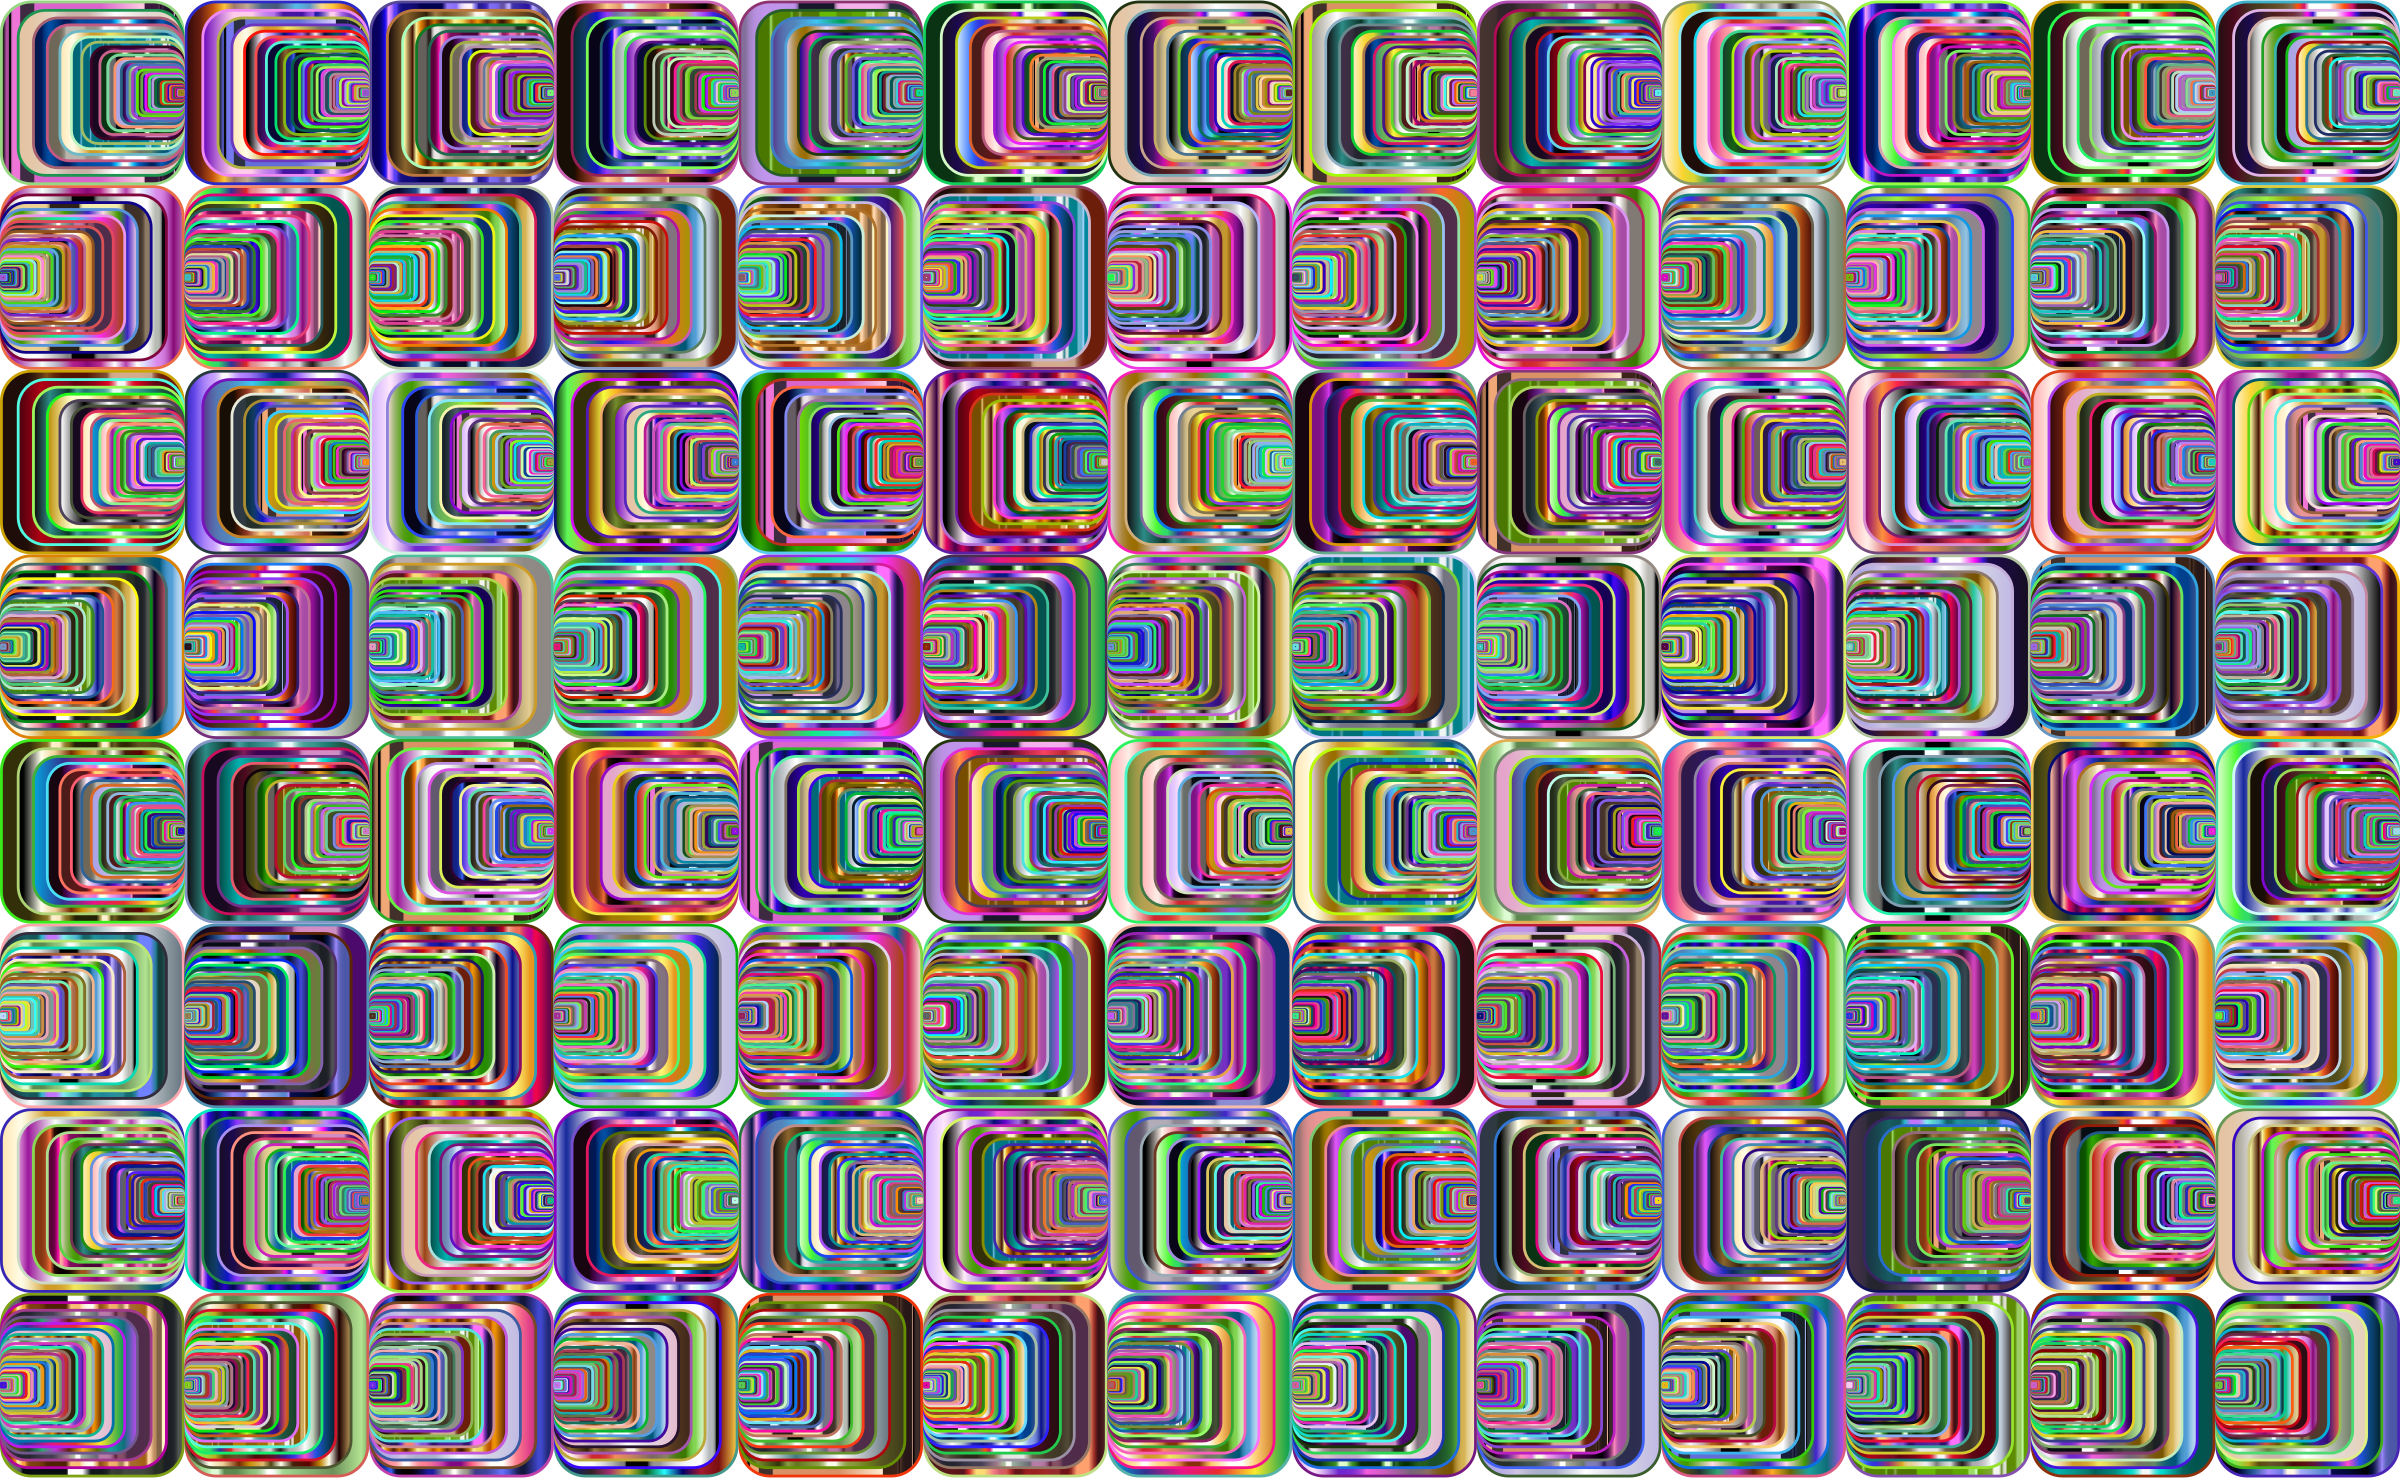 Prismatic Perspective Illusion 2 Pattern 4 Variation 5 by GDJ